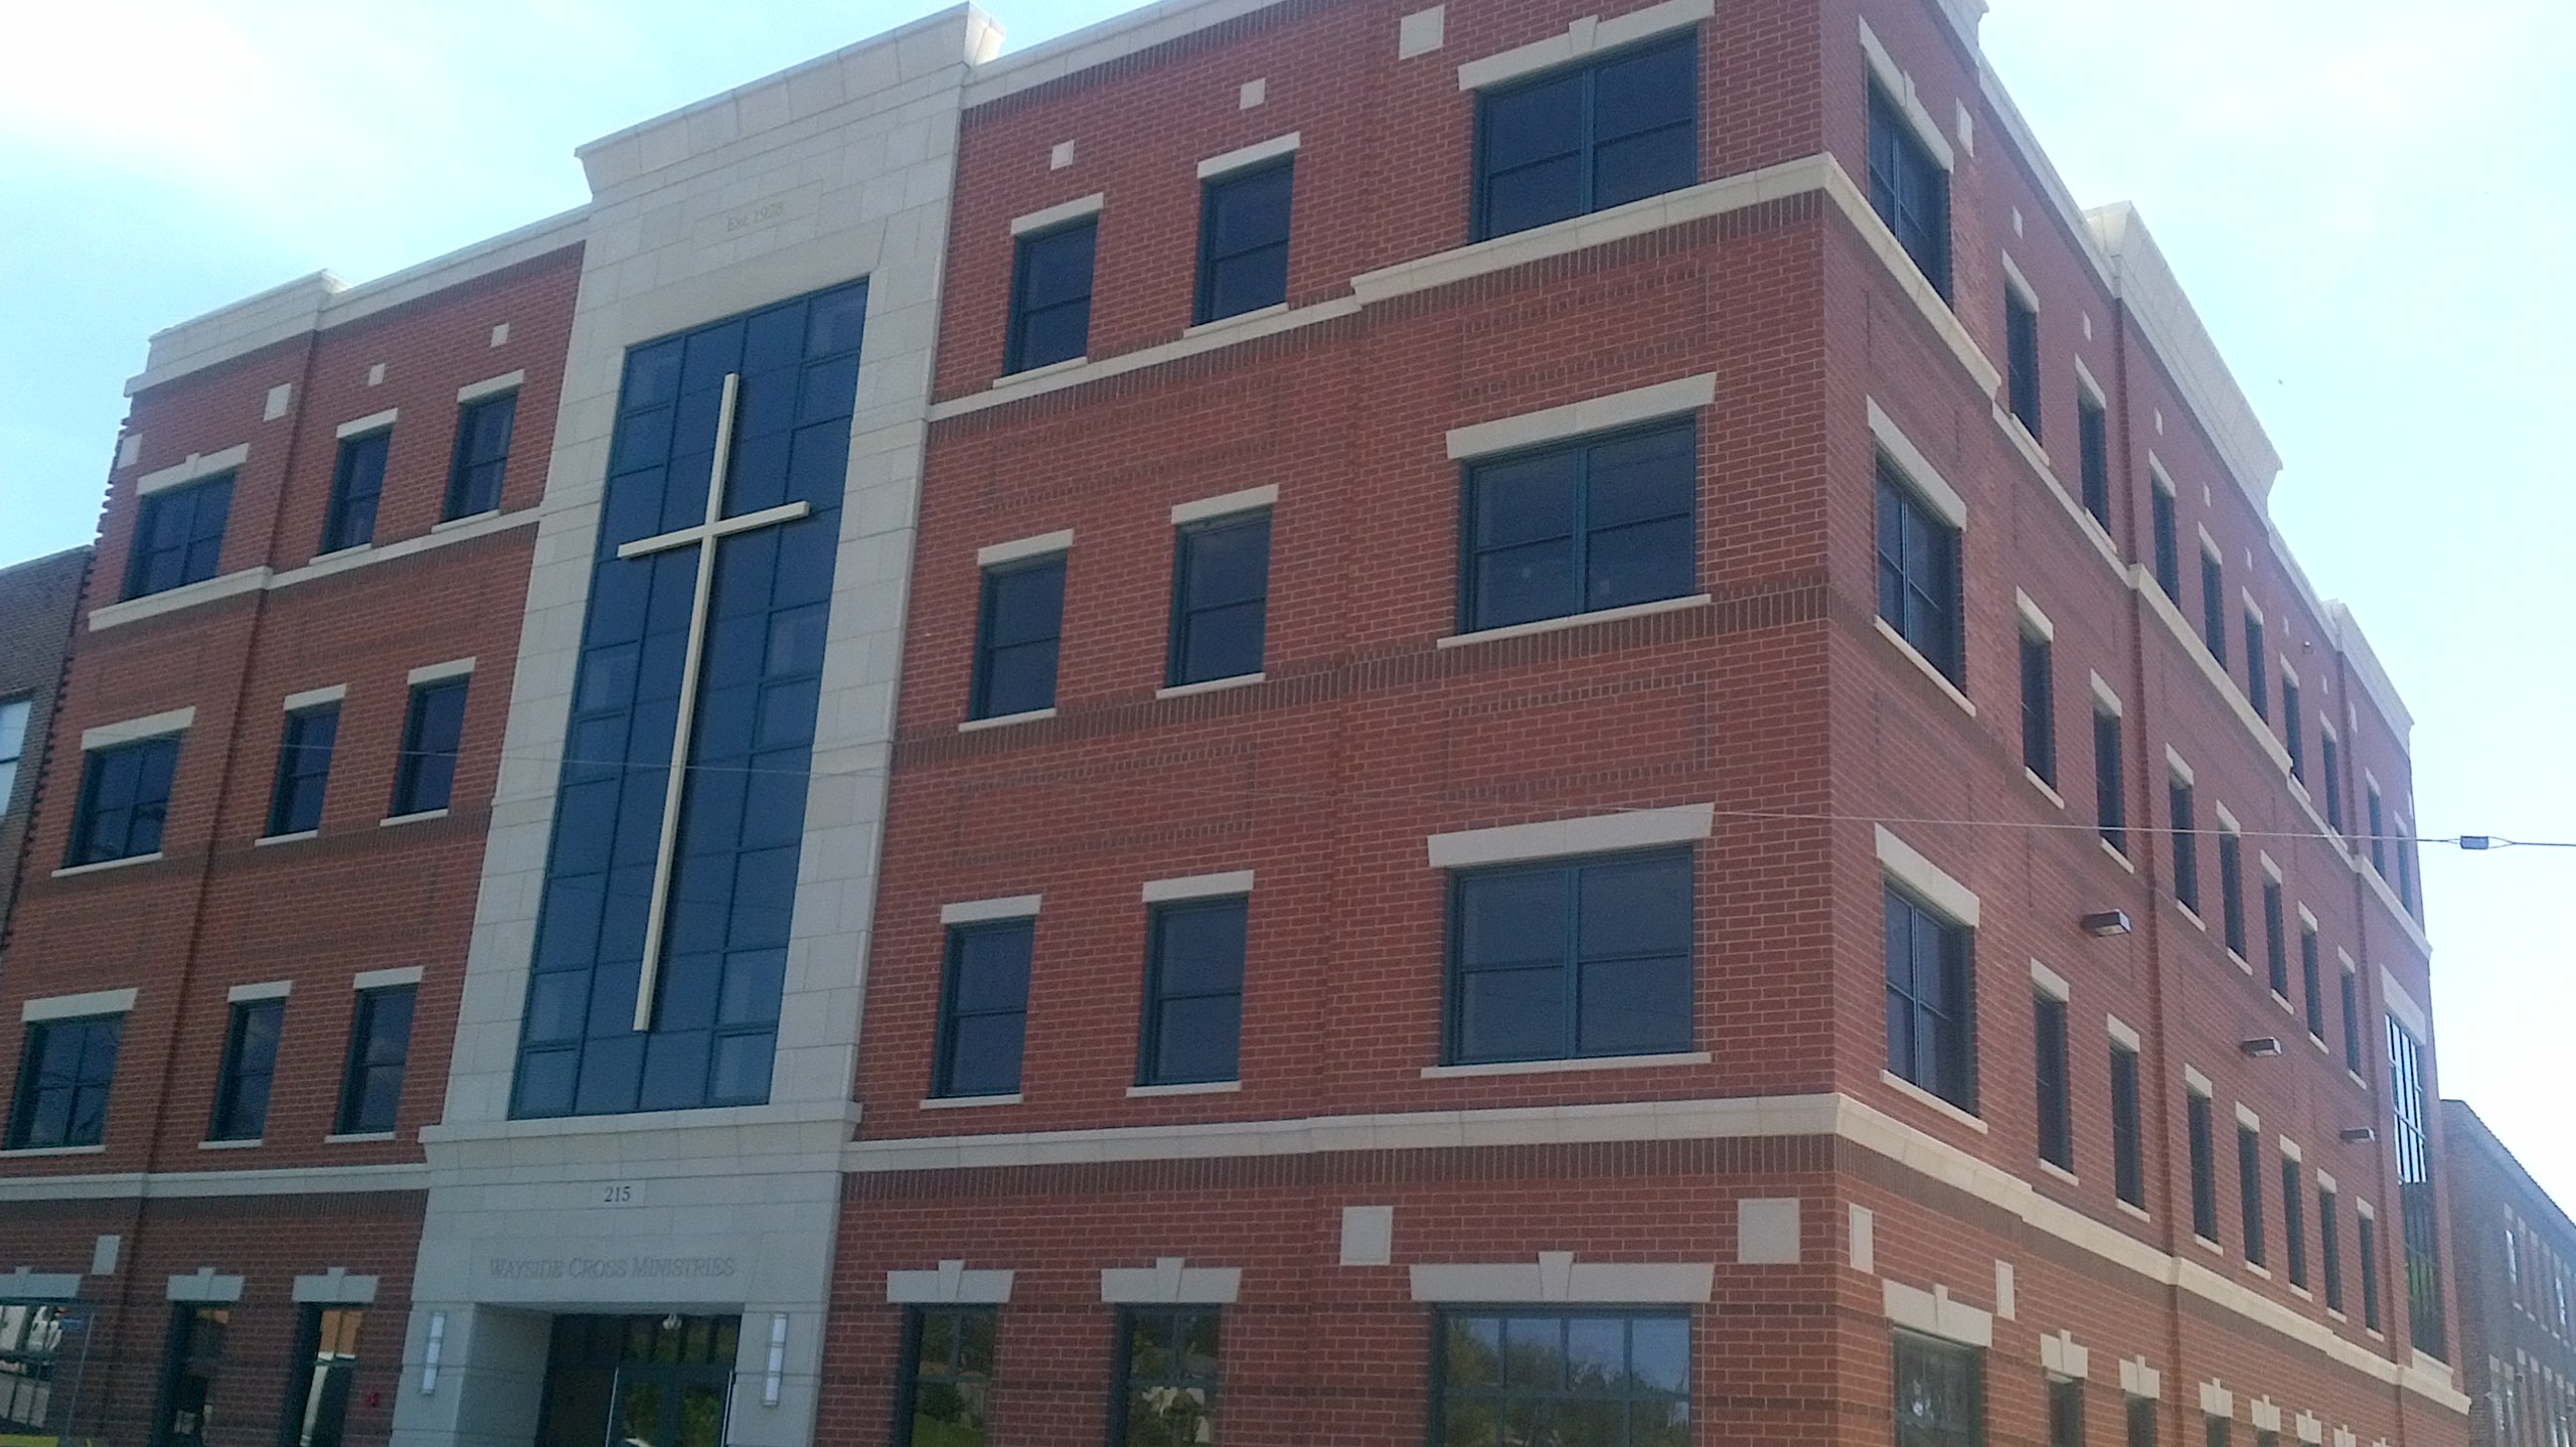 Wayside Cross Ministries 215 building.